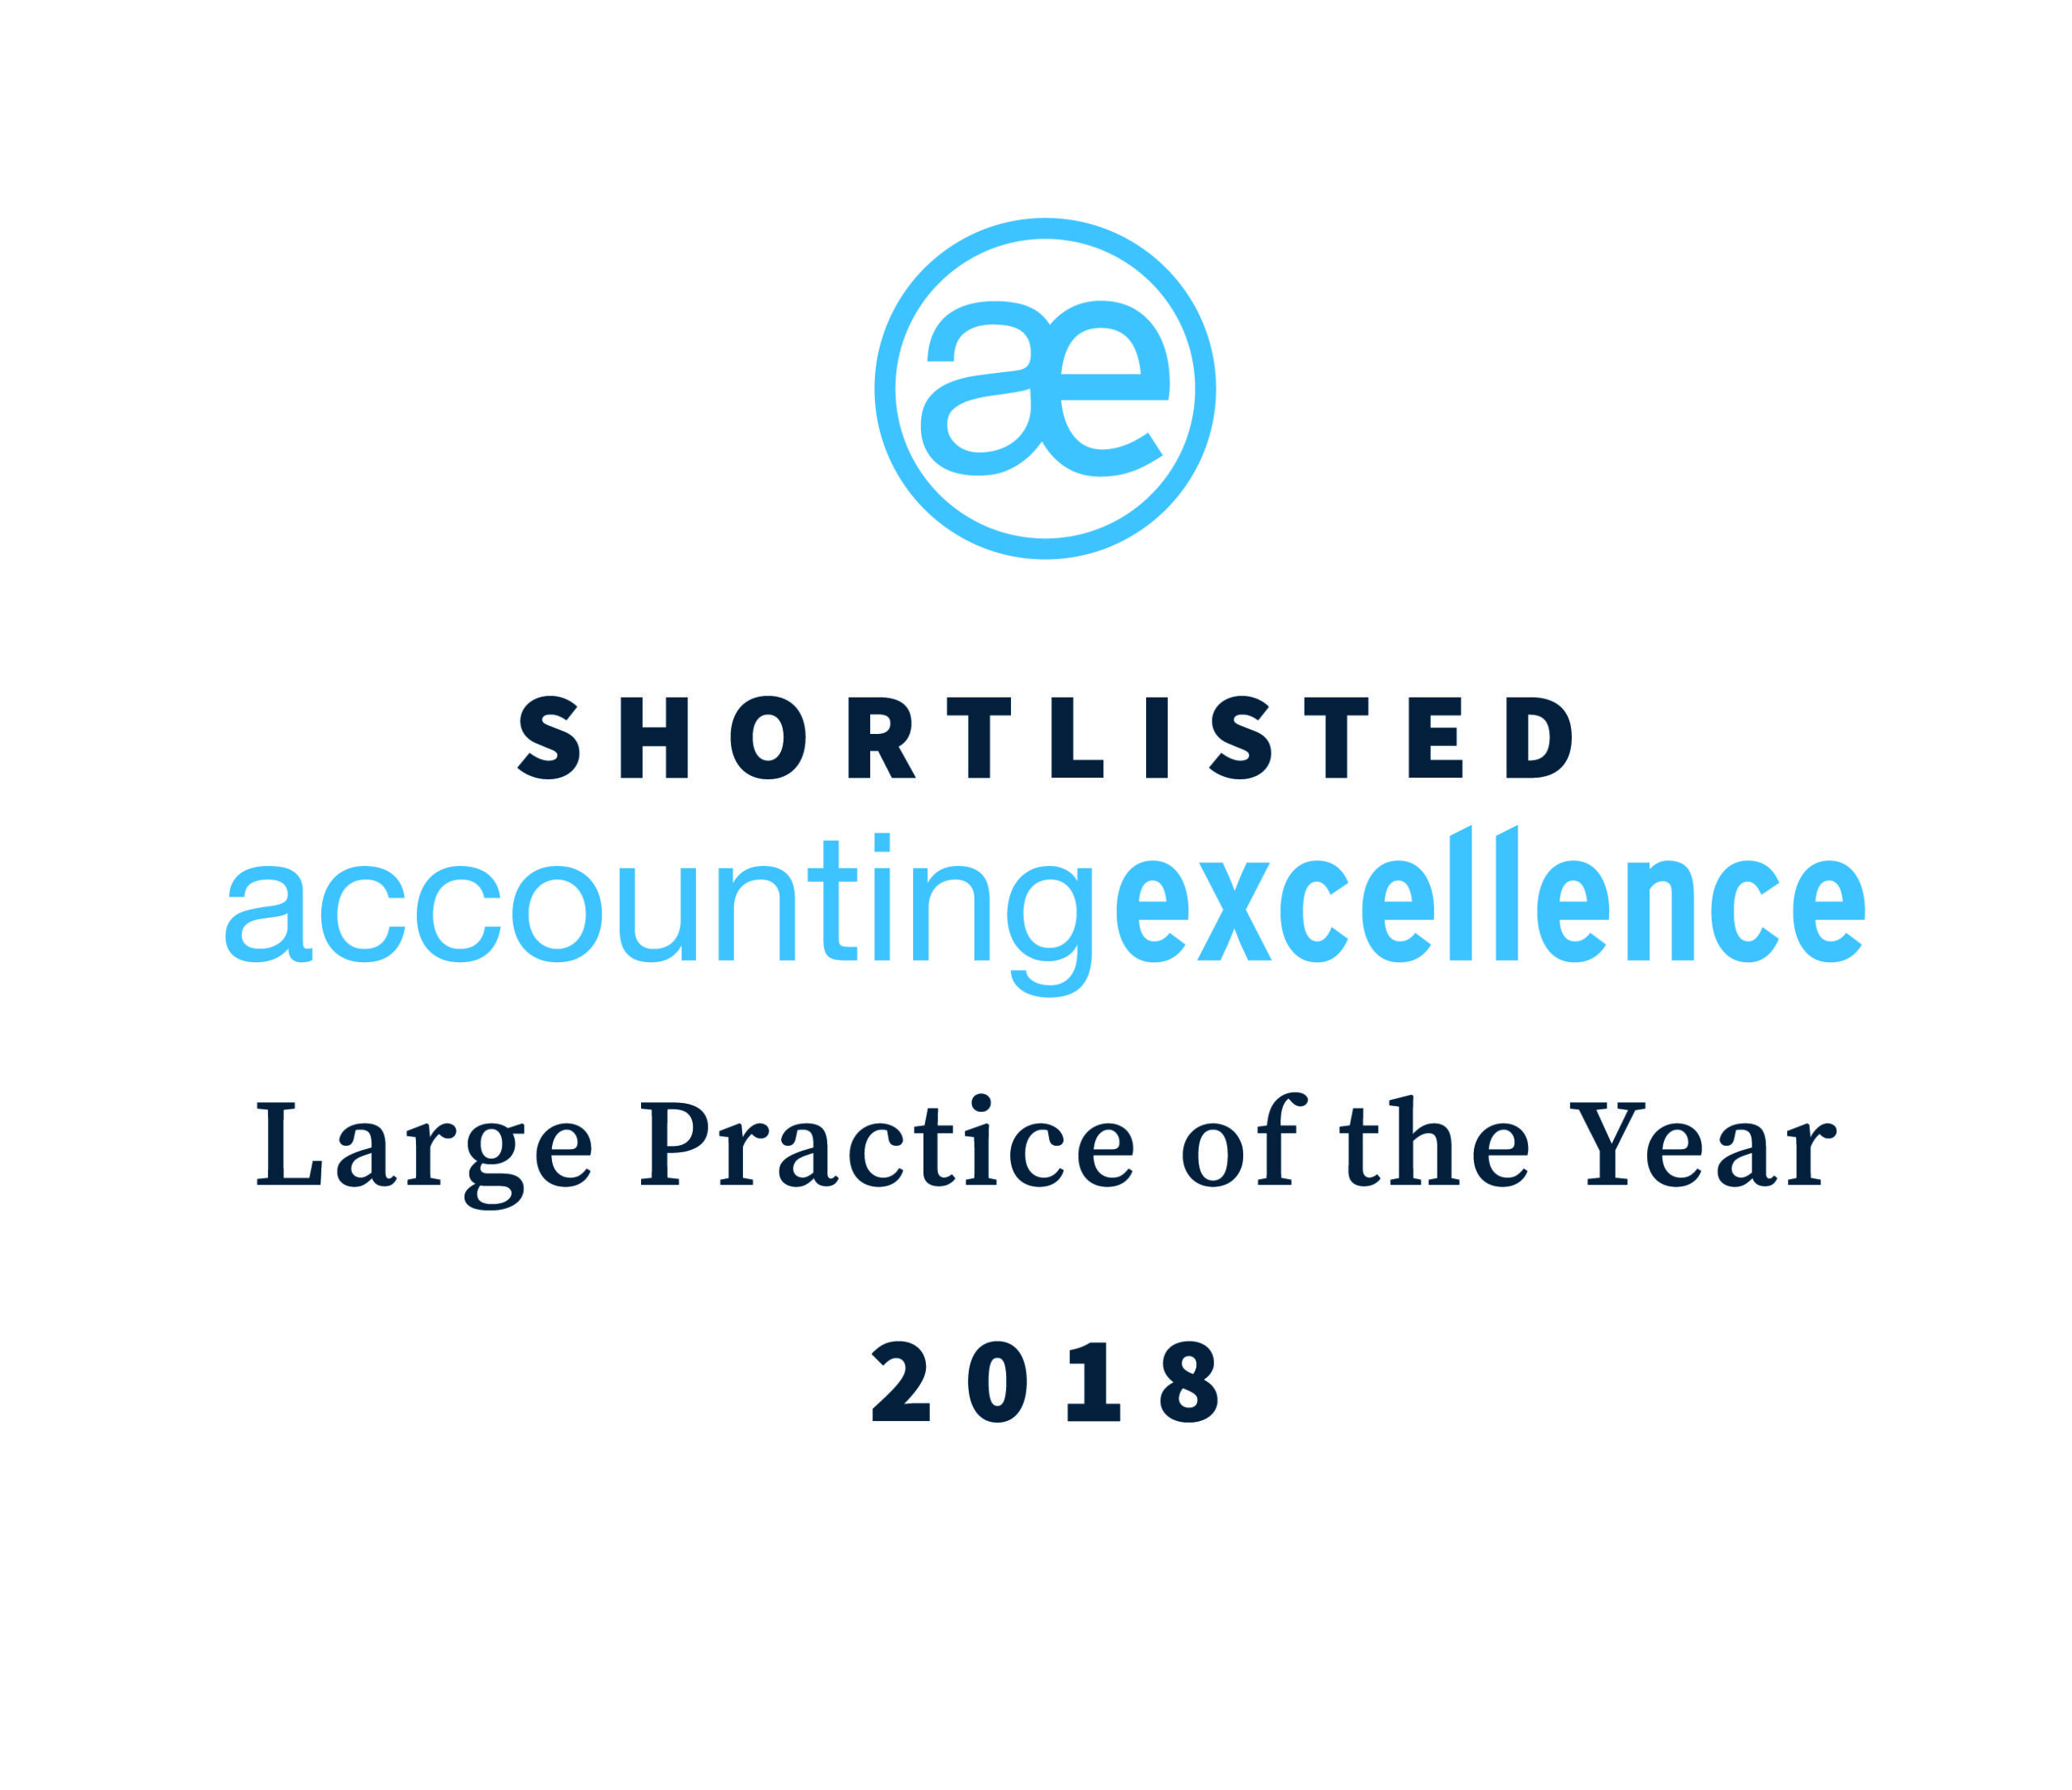 Whitley Stimpson shortlisted for AccountingExcellence award